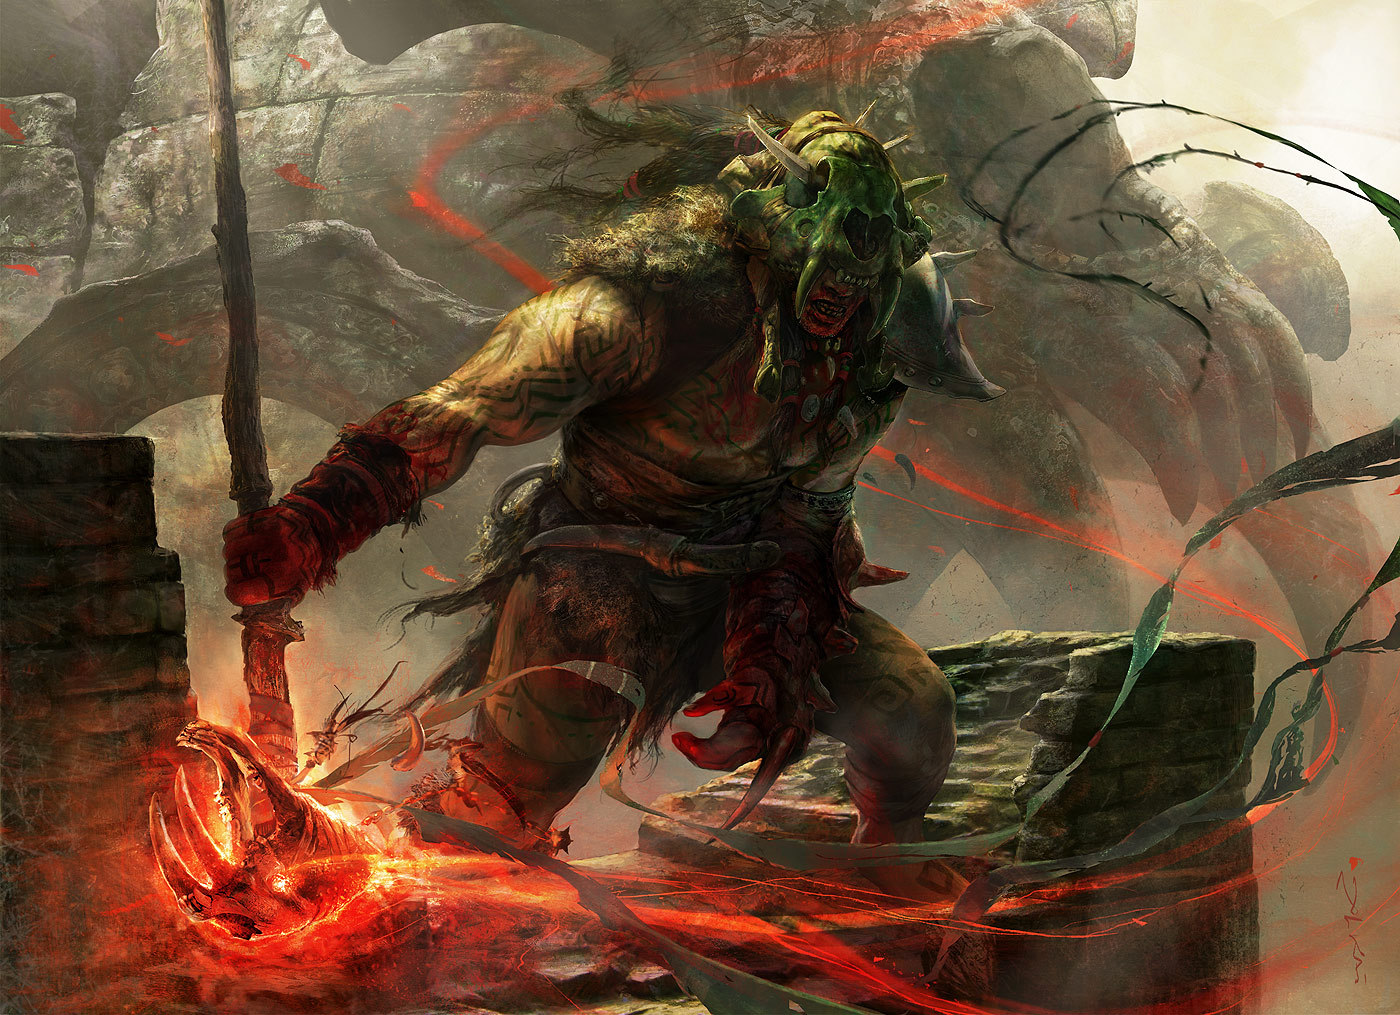 Aleksi Briclot Skarrg Guildmage Card illustration for Return to Ravnica Magic The Gathering